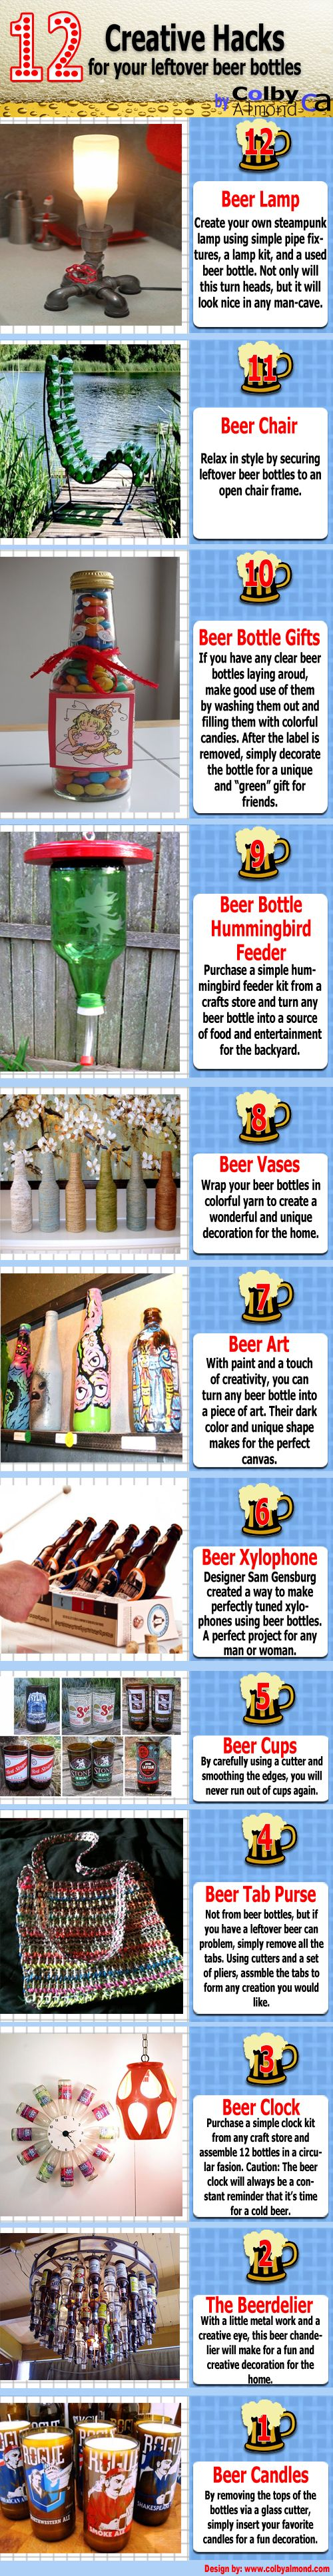 12 creative & crafty ways to reuse beer bottles! Check it out!